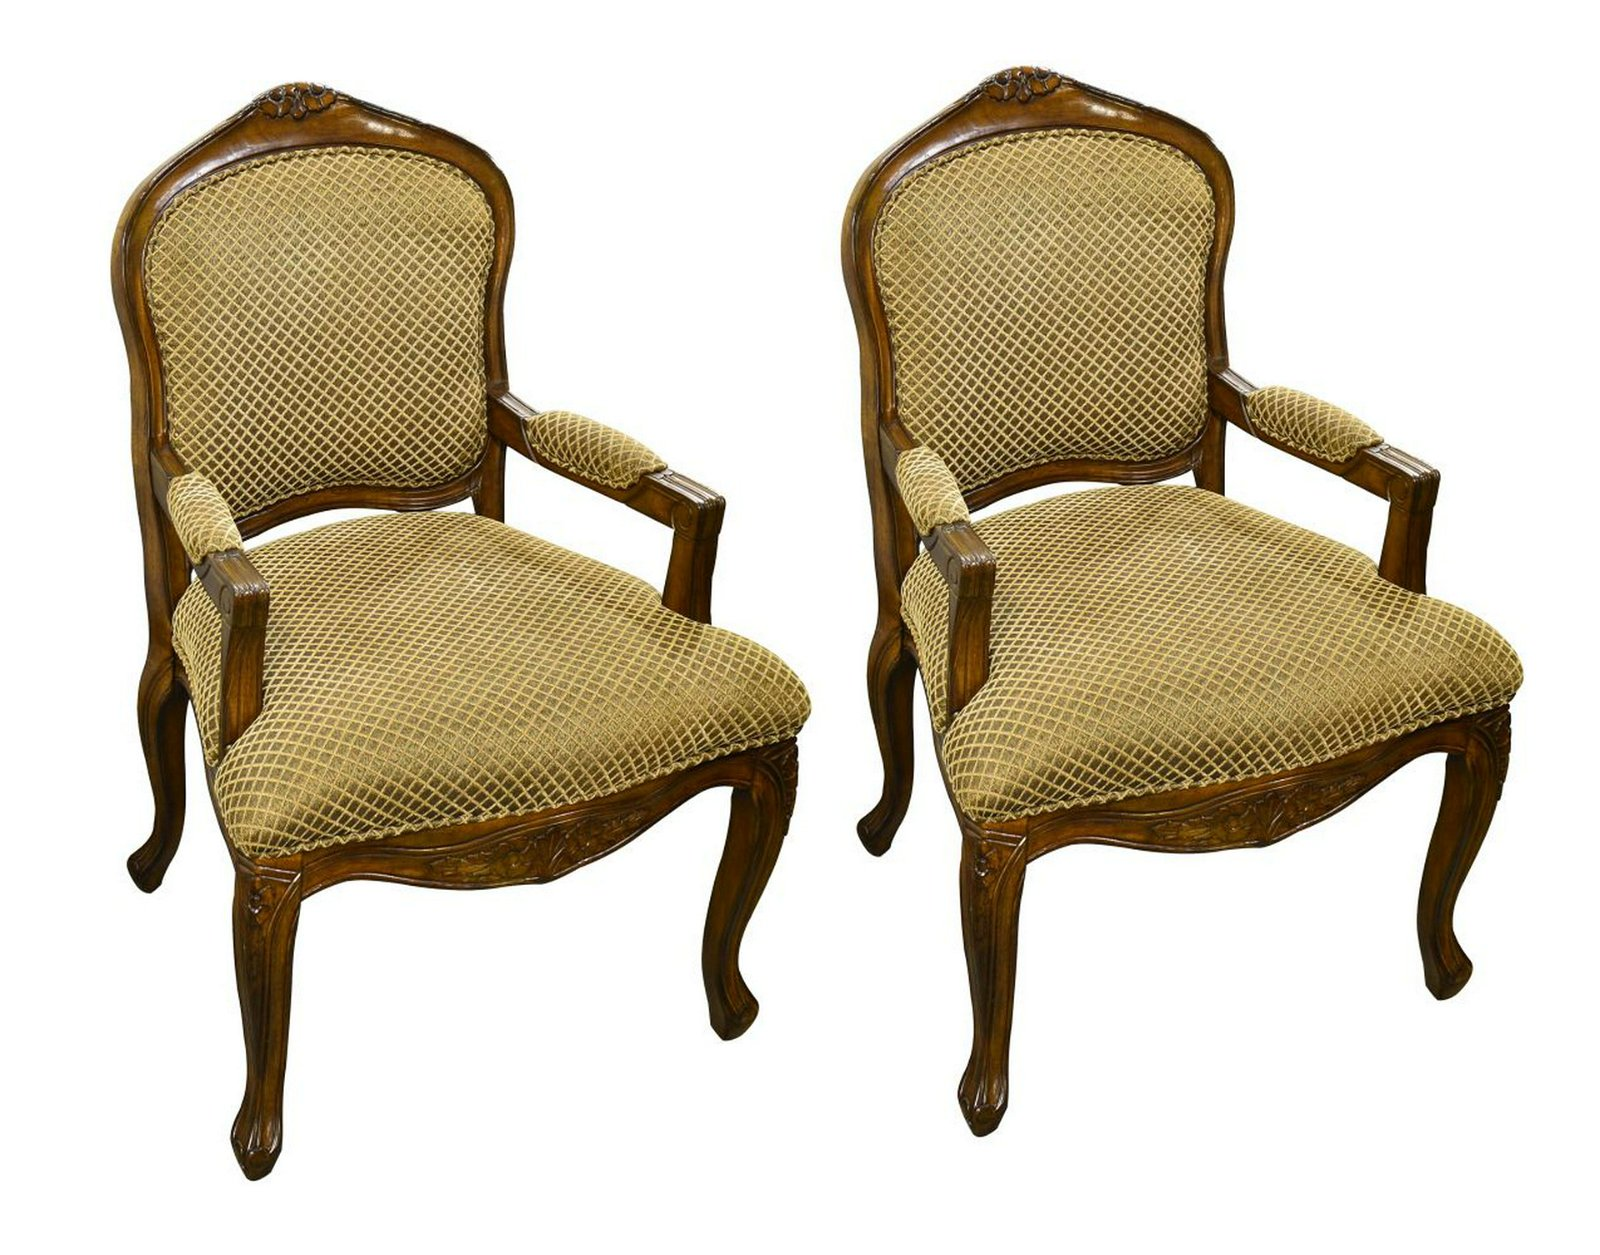 Pair of Louis XV-style armchairs